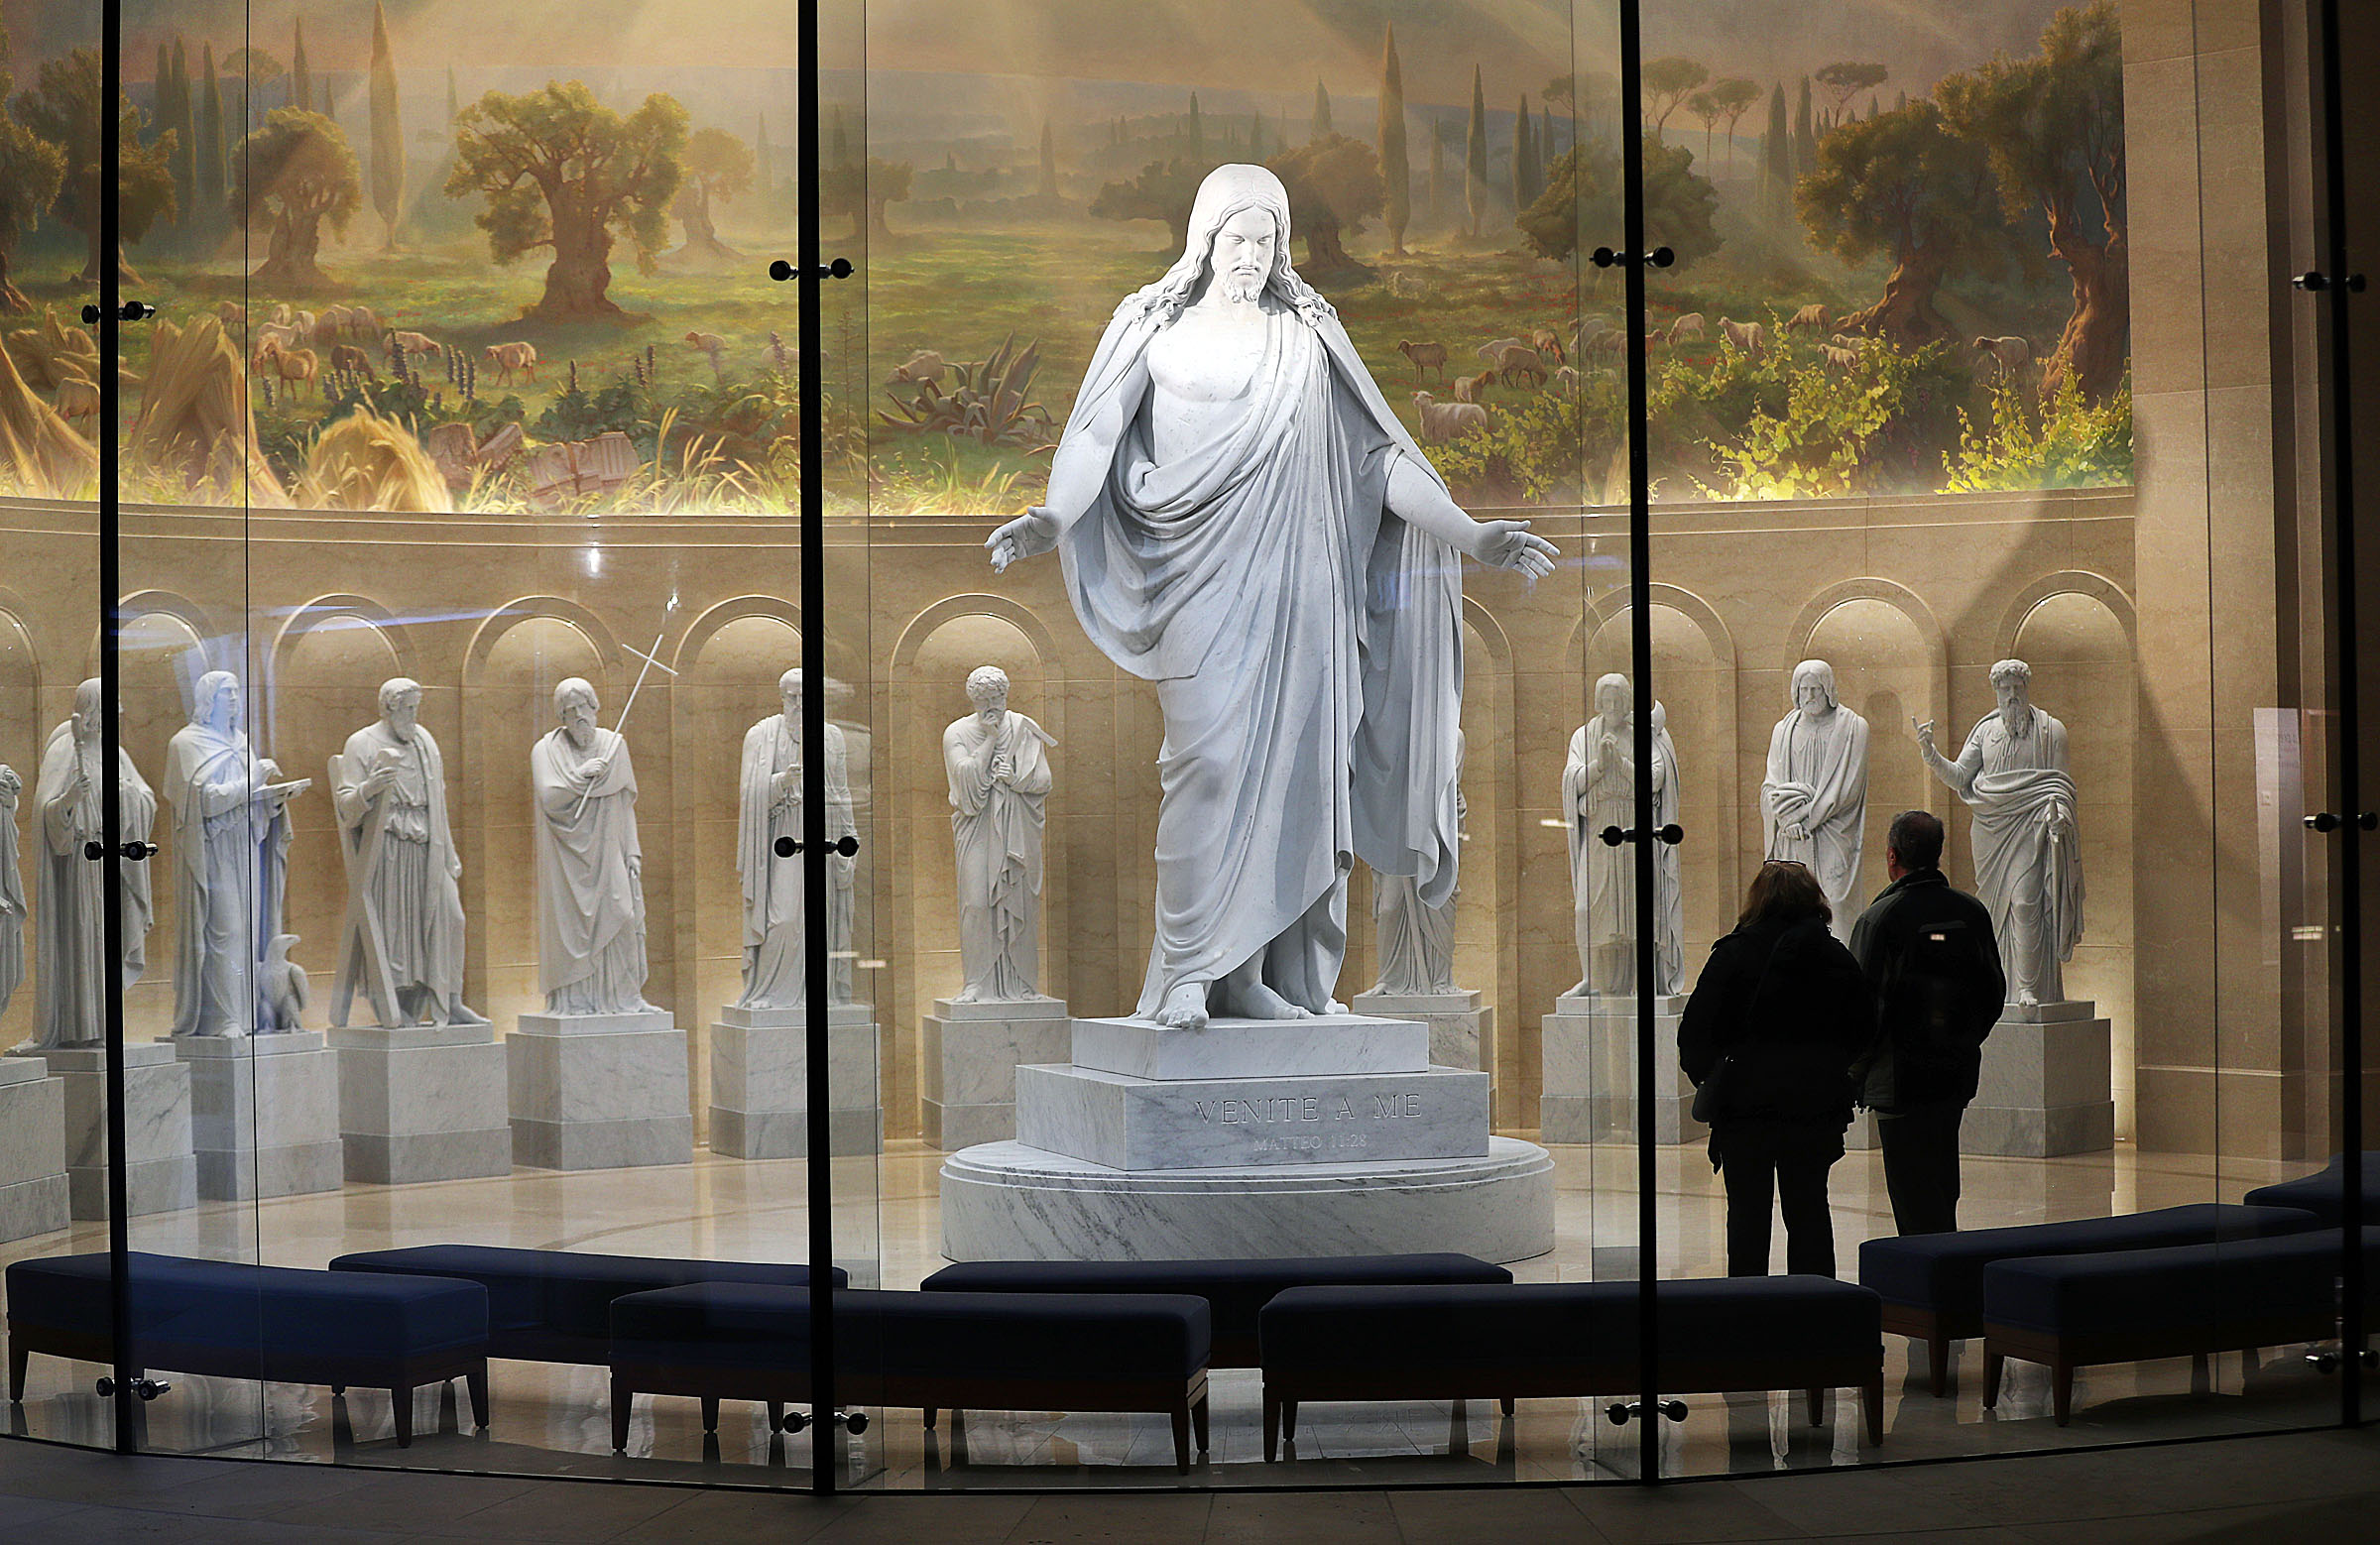 Volunteers Vanna and Benedicto Parisi look at statues of Christ and the Apostles in the Rome Temple Visitor's Center of The Church of Jesus Christ of Latter-day Saints in Rome, Italy on Sunday, Jan. 13, 2019.